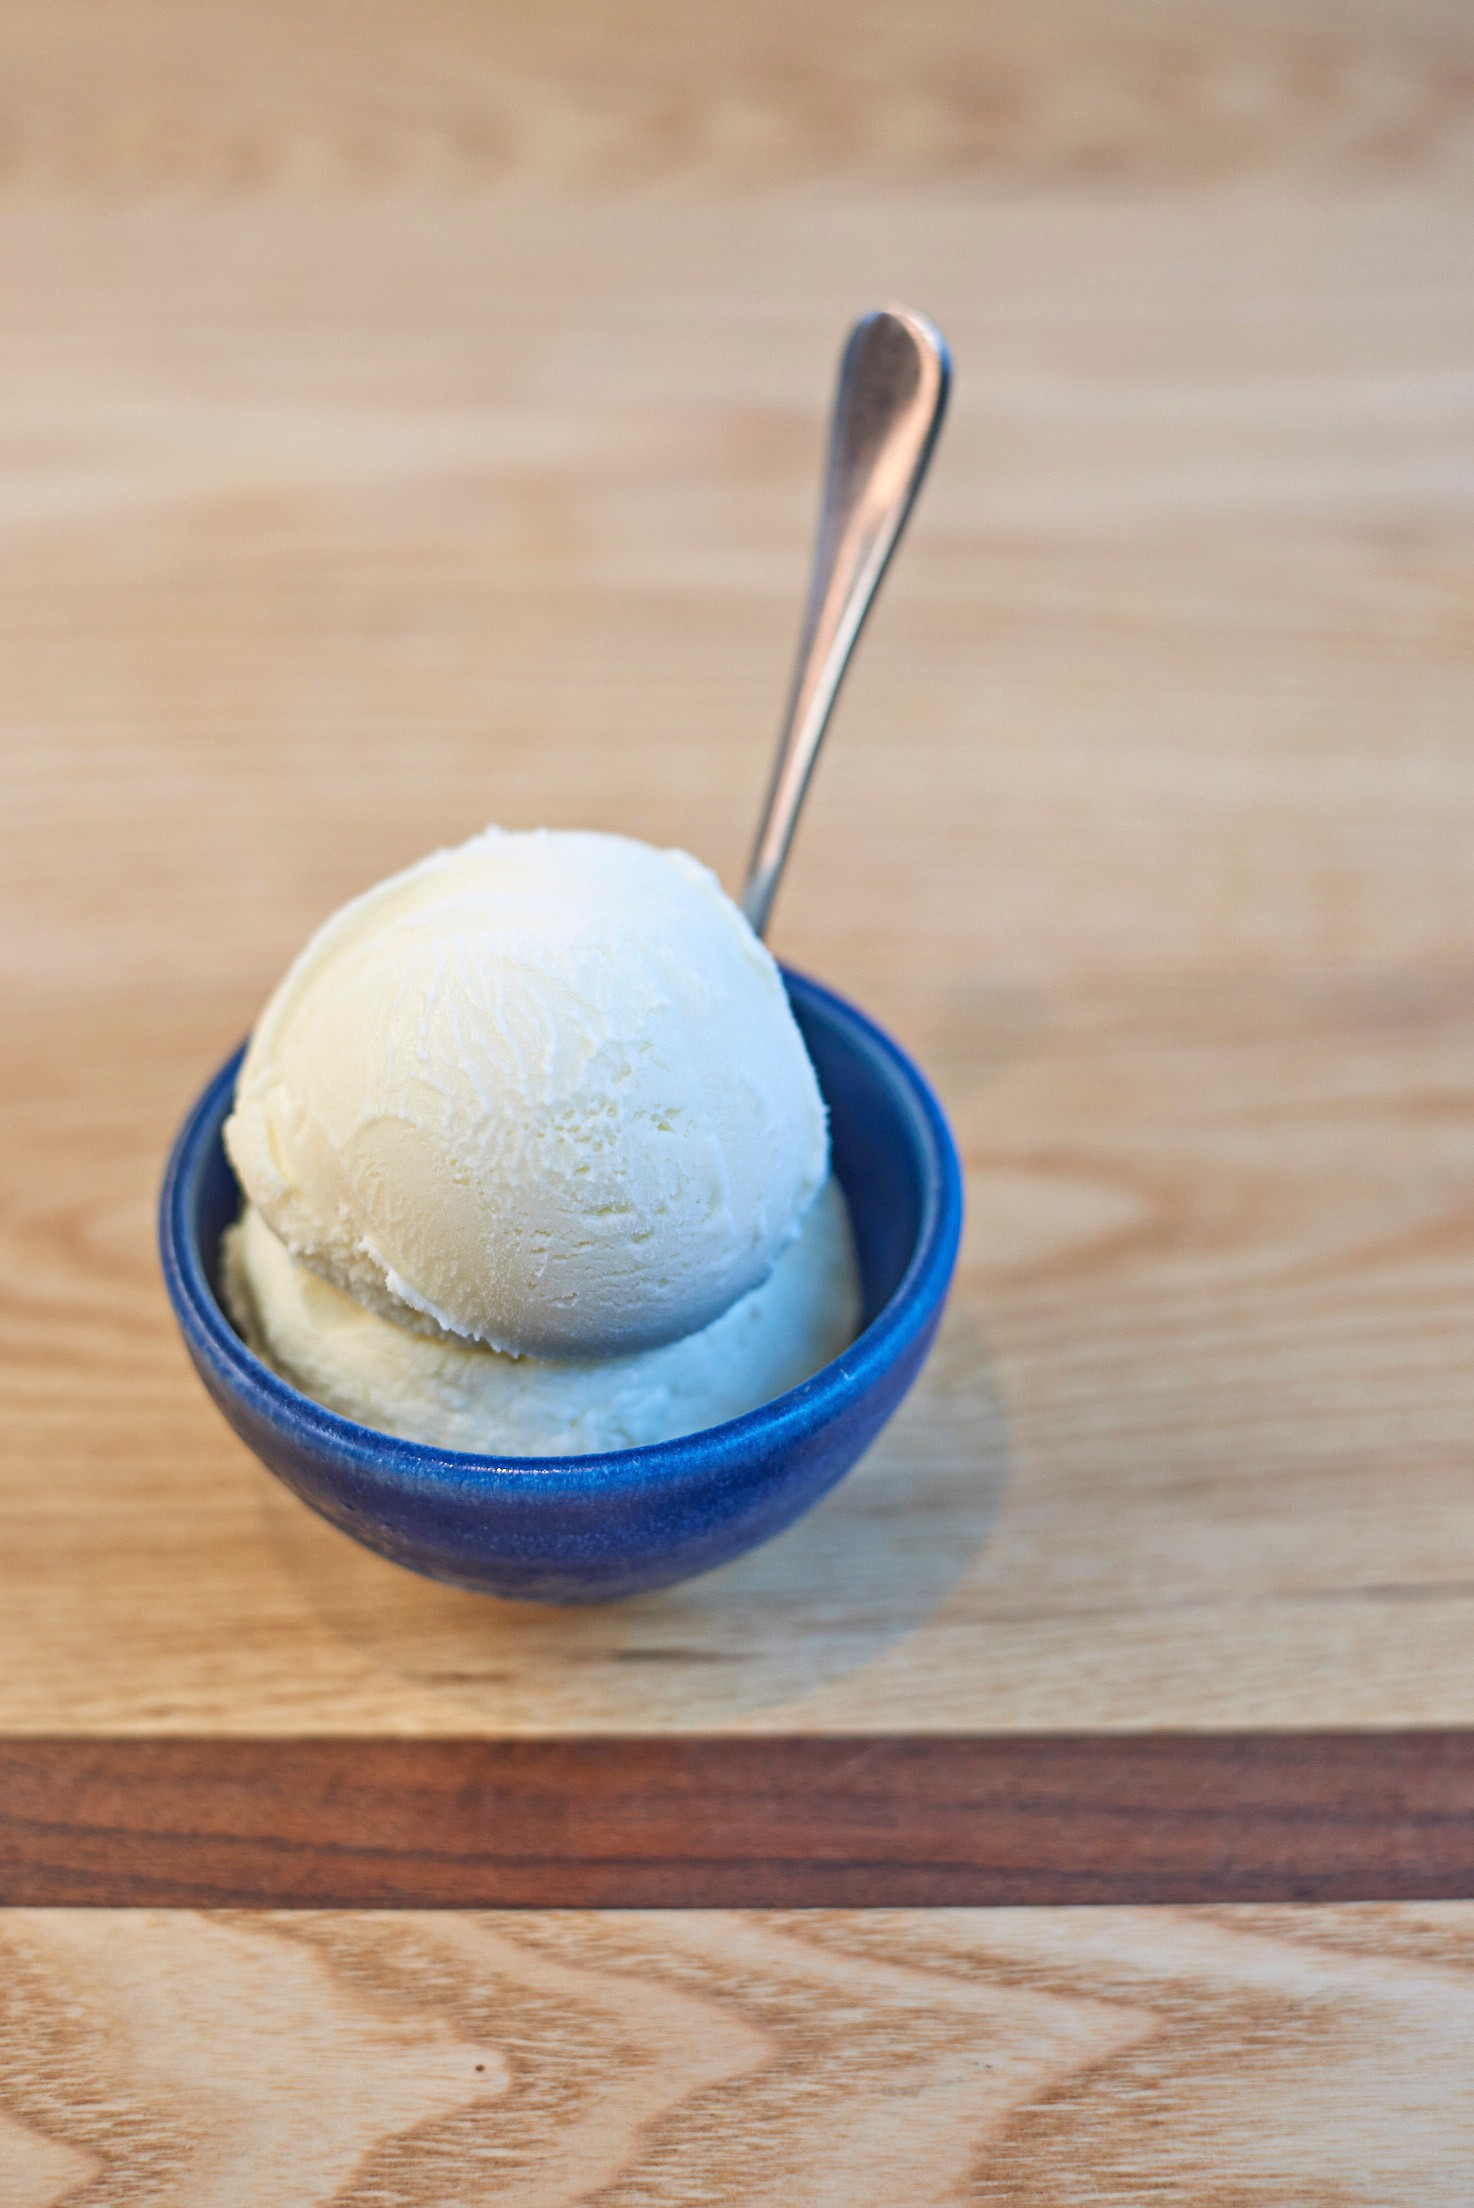 Black Pepper Ice Cream with Bay Leaves served in a very small blue bowl on a wooden table